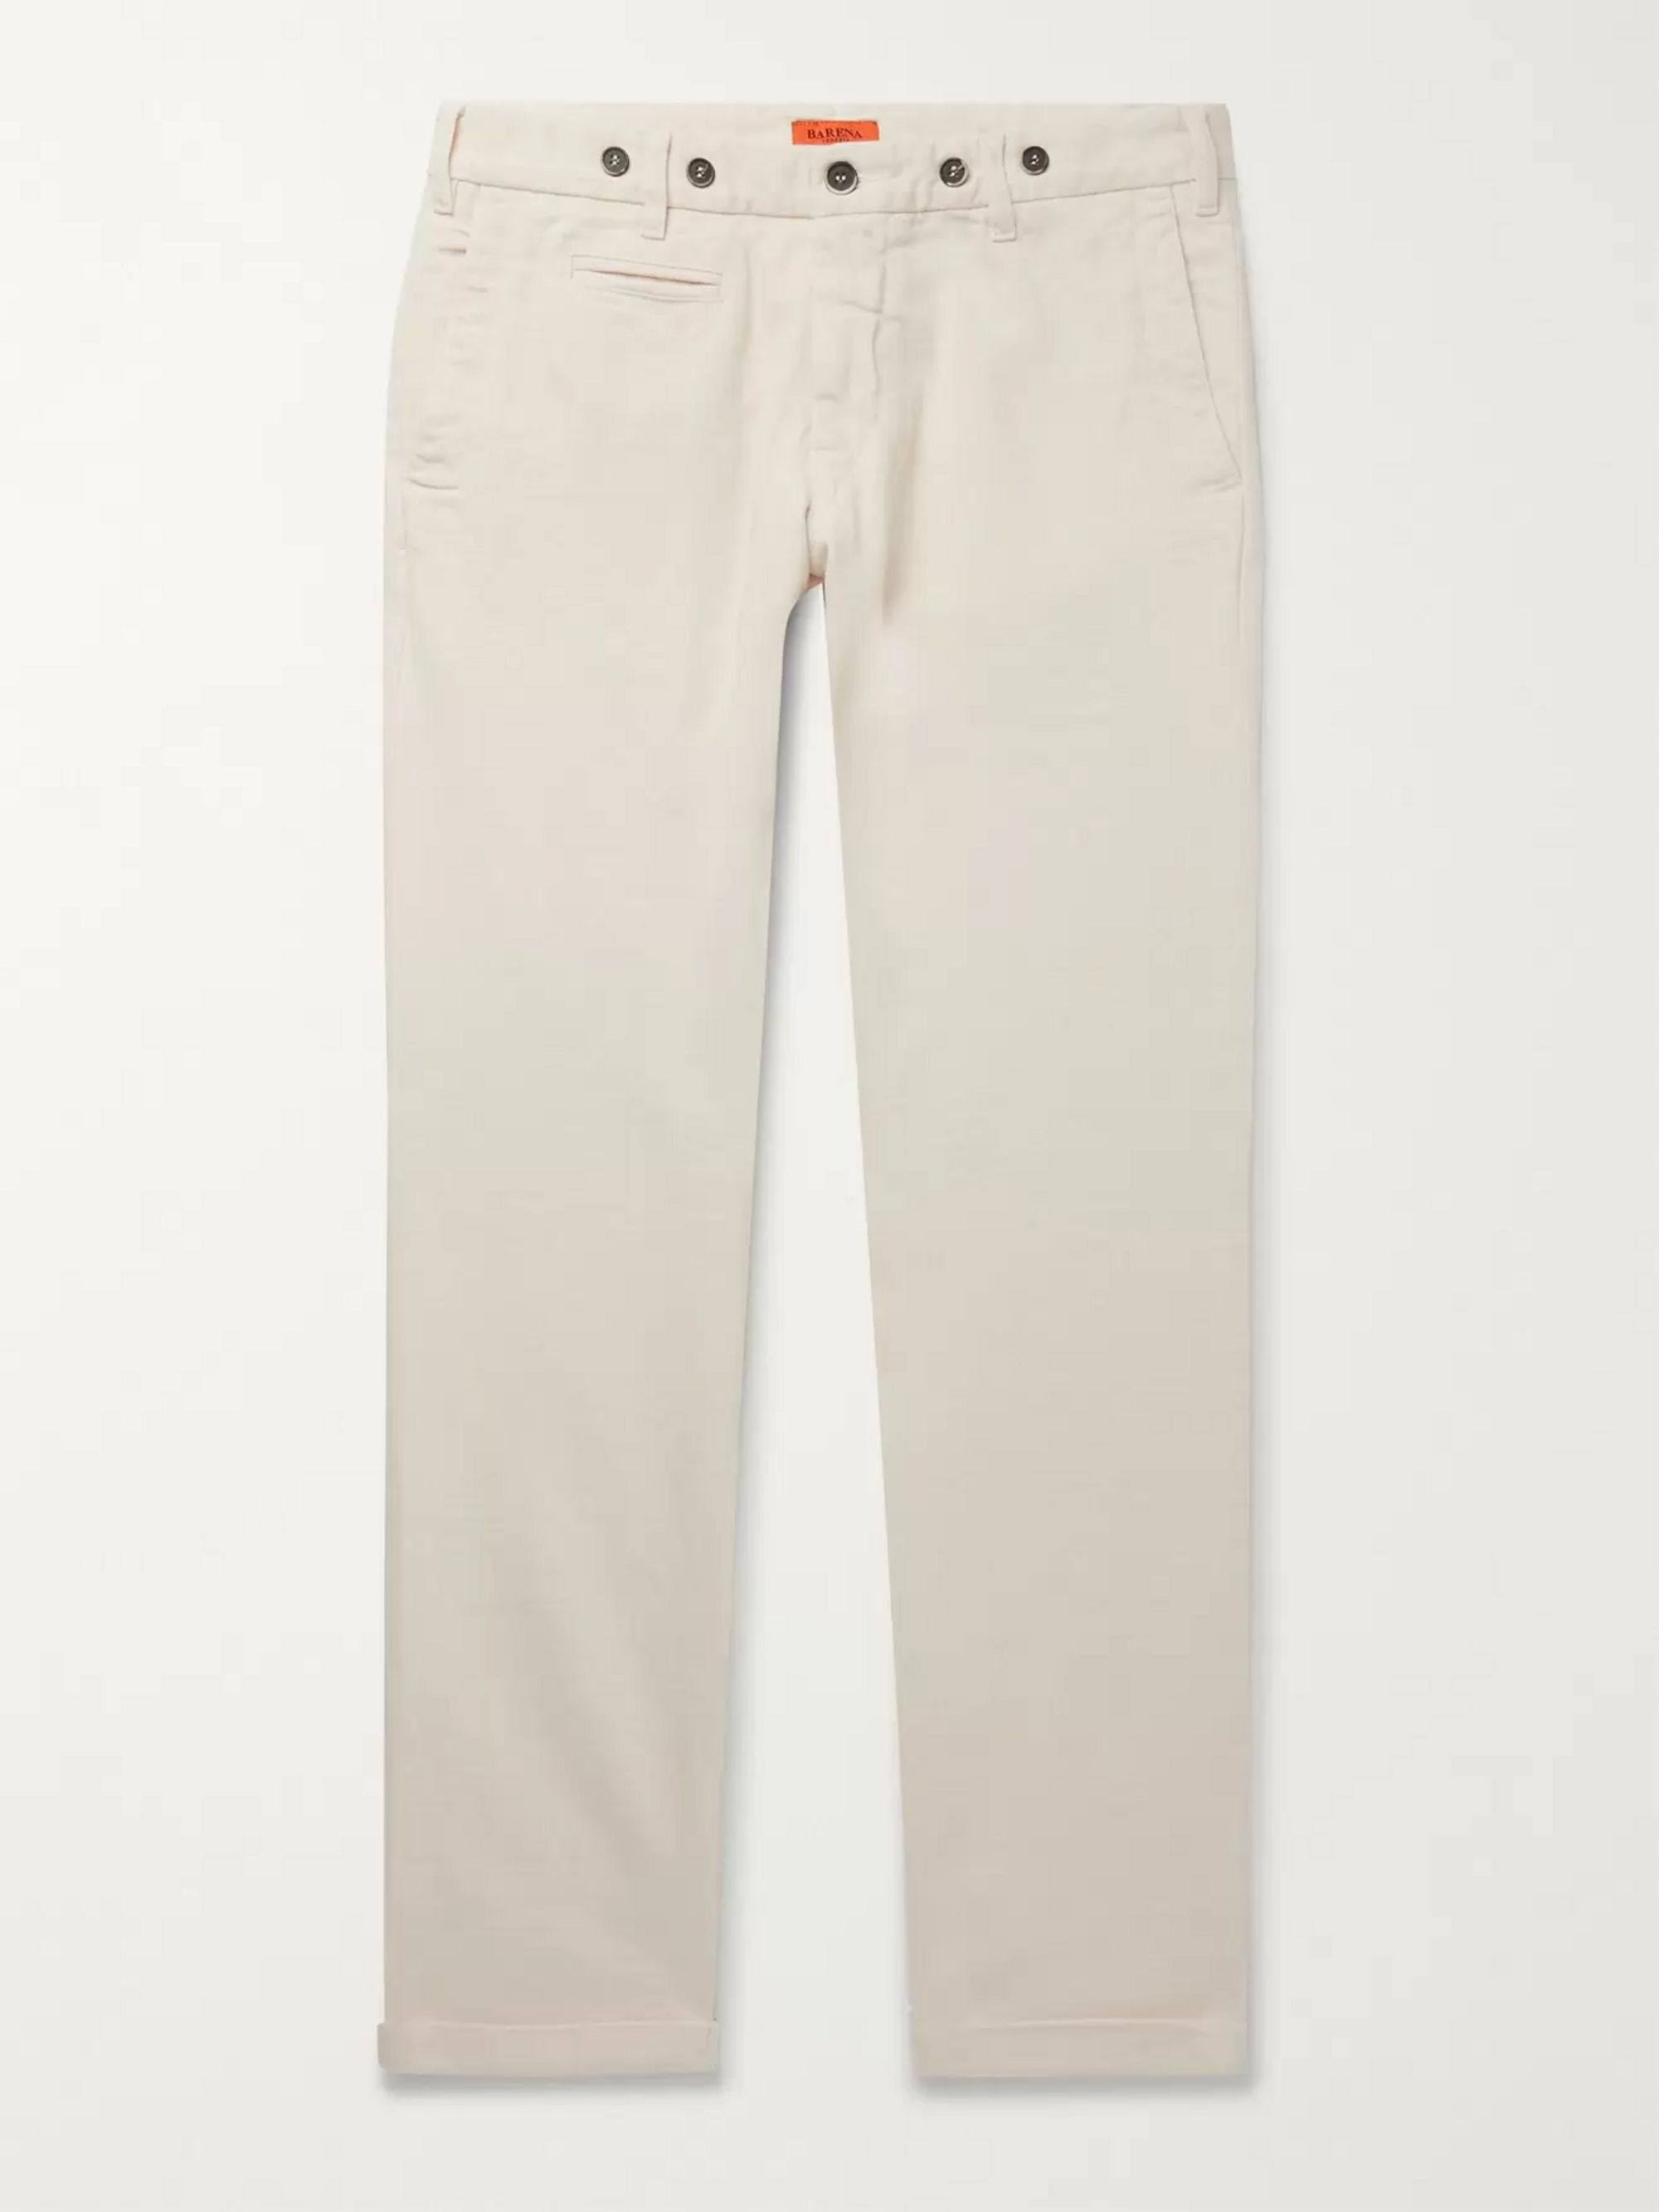 Barena Rampin Cotton-Twill Trousers